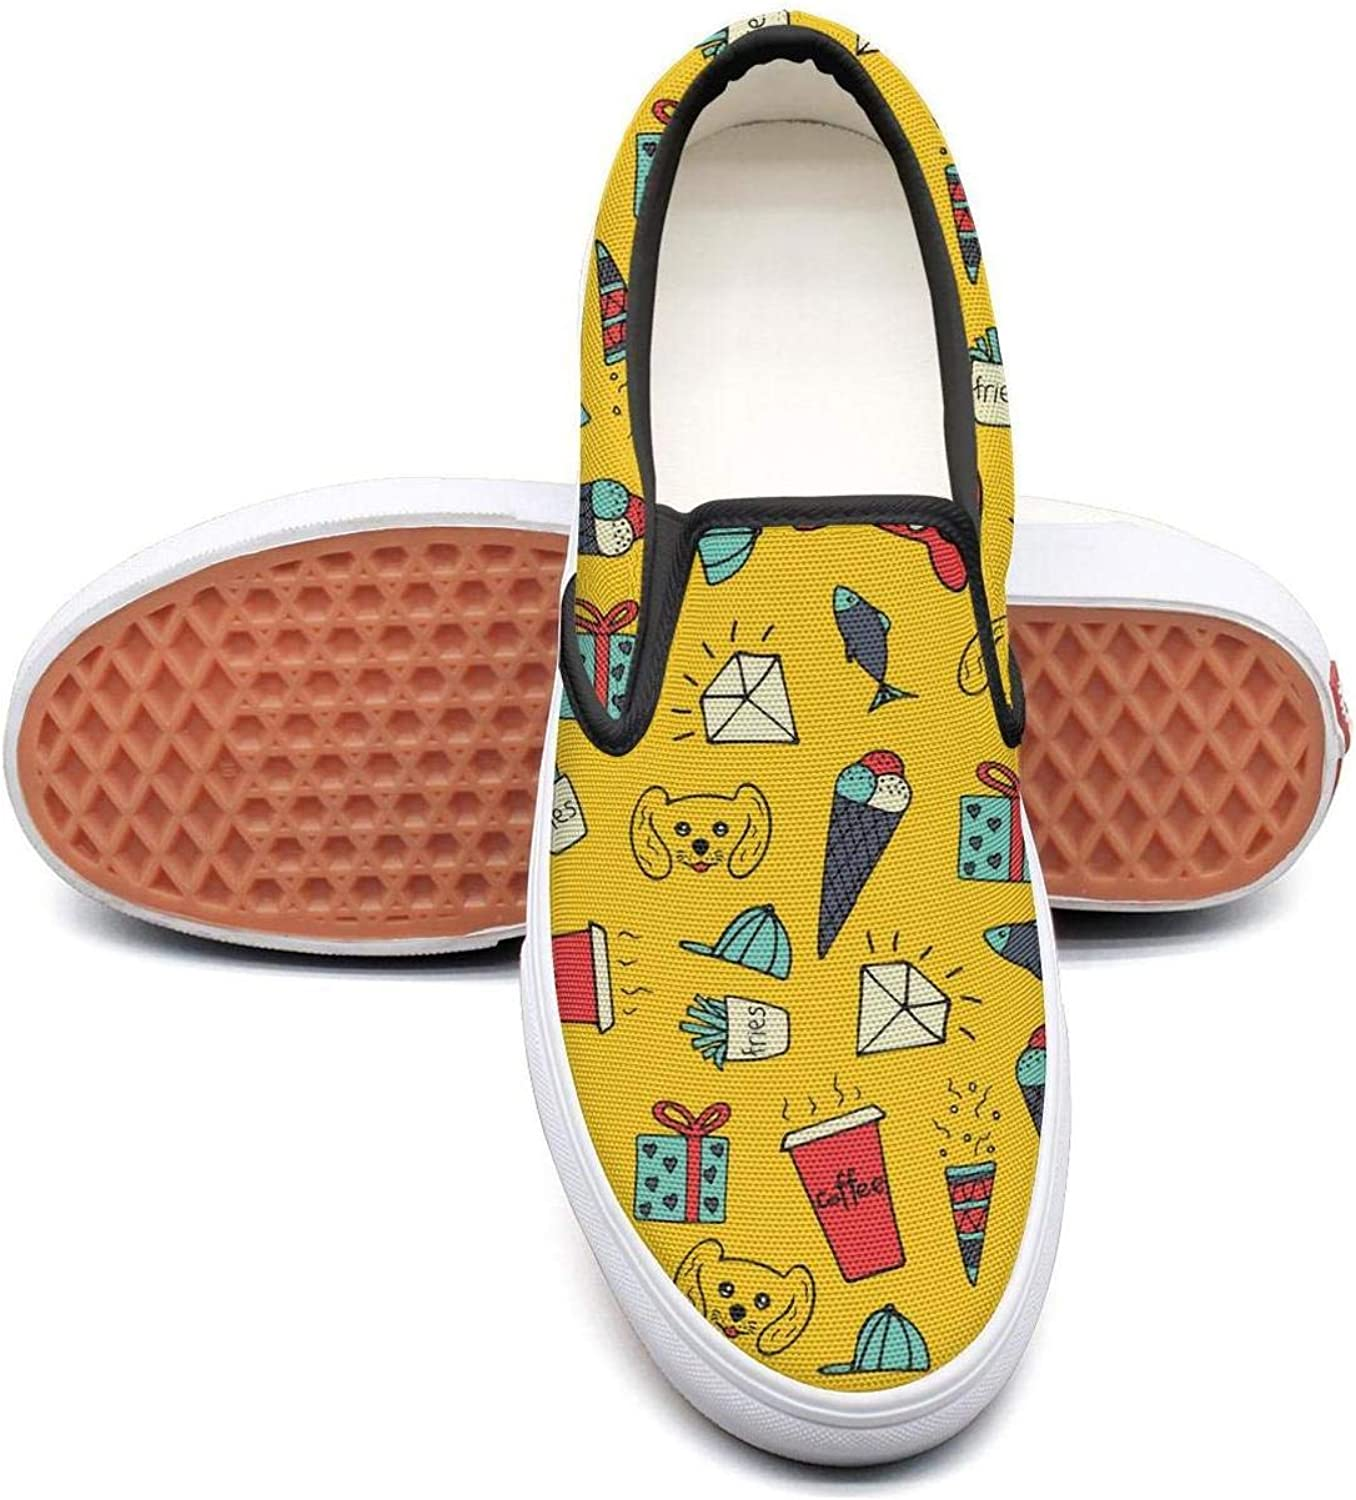 Yellow Cute Cartoon Diamond Slip On Rubber Sole Loafers Canvas shoes for Women Casual